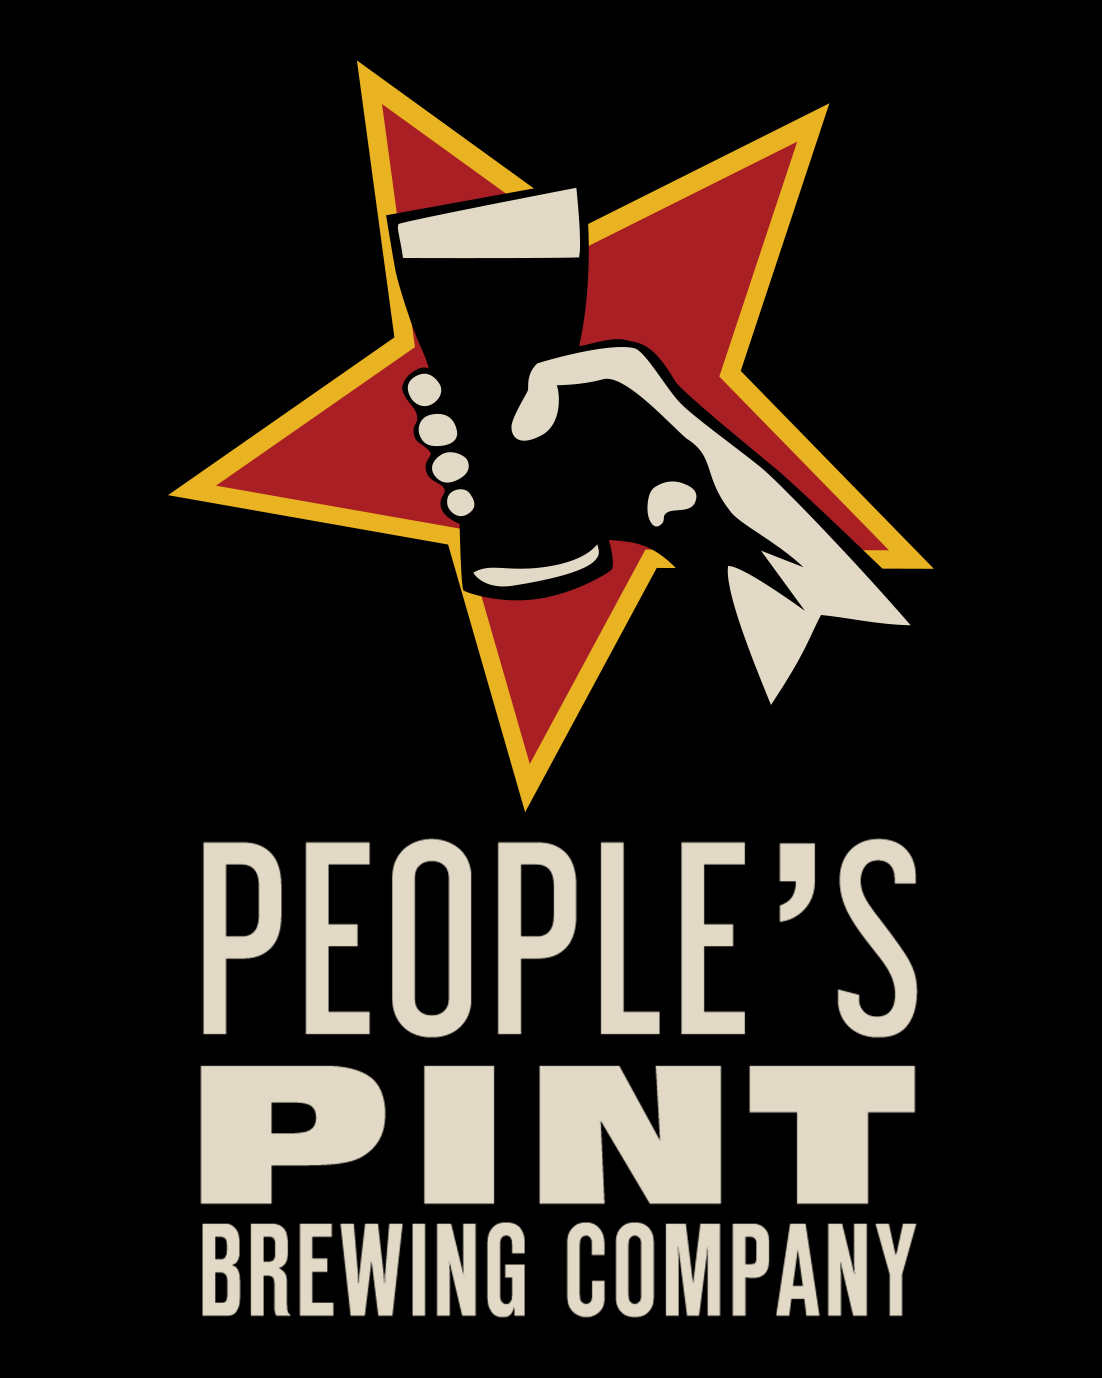 People's Pint Brewing Company logo